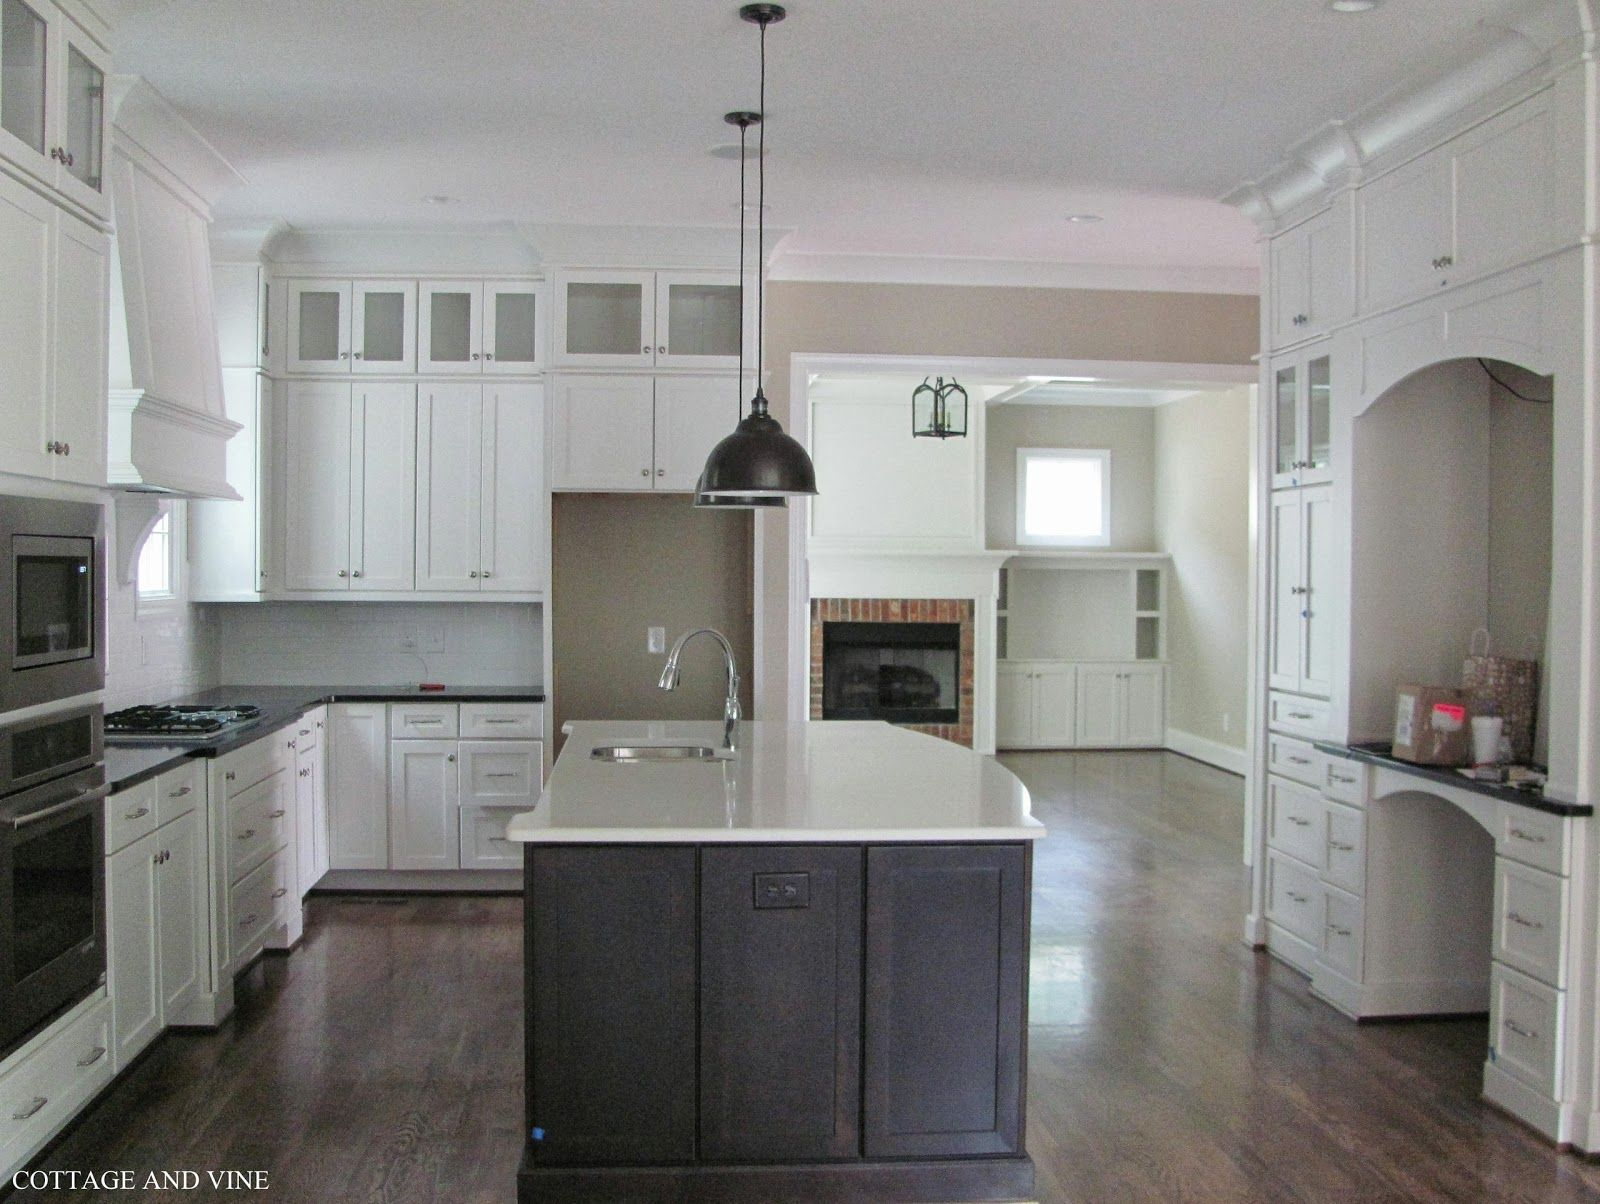 Stylish white kitchen cabinets and hanging dining lights over